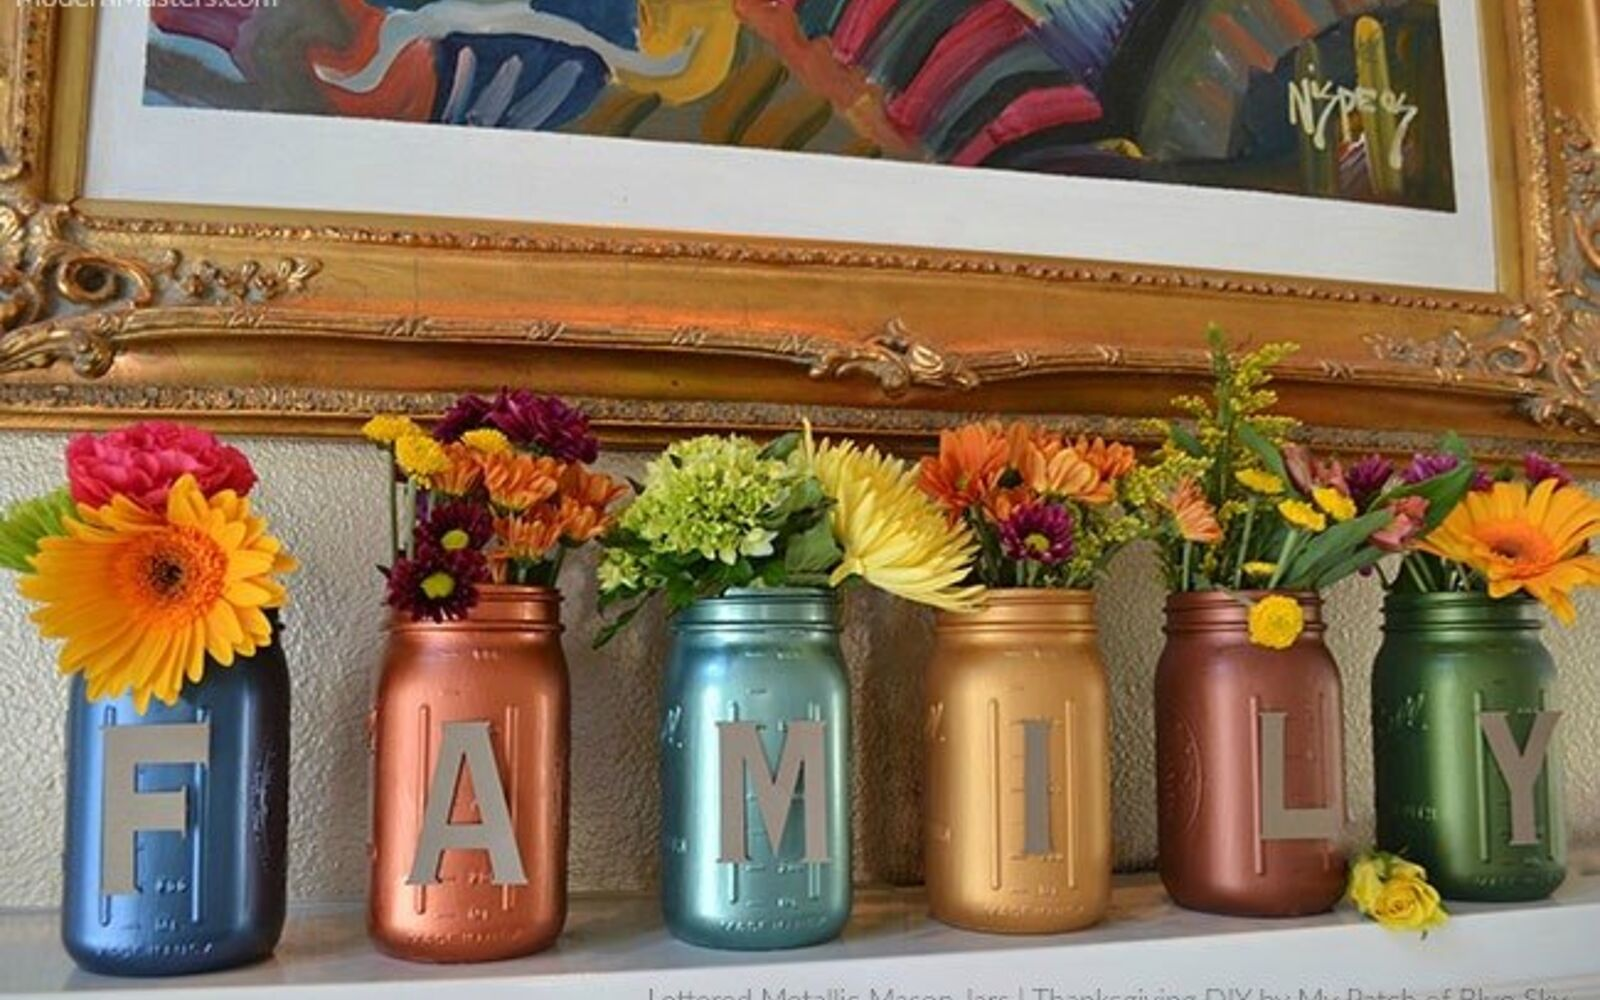 s 30 great mason jar ideas you have to try, Gorgeous Metallic Mantle Sign